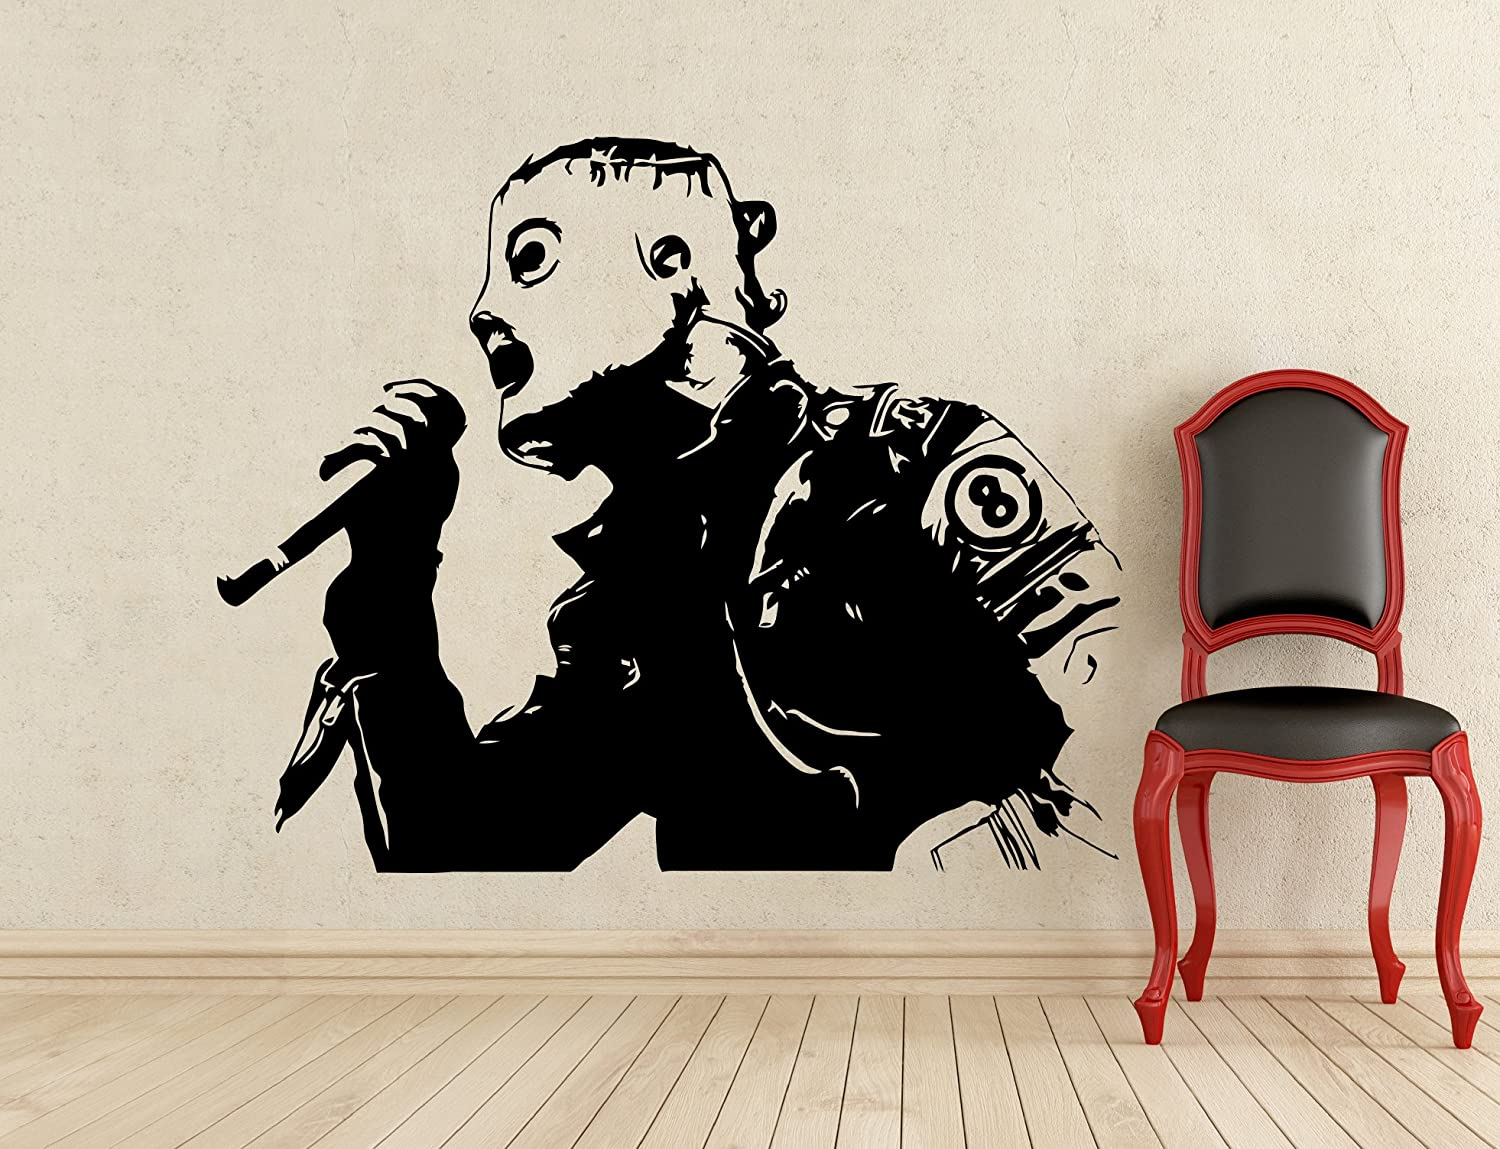 Corey Taylor Slipknot Wall Decal Music Vinyl Sticker Home Art Wall Decor Mural Removable Waterproof Decal (218s)